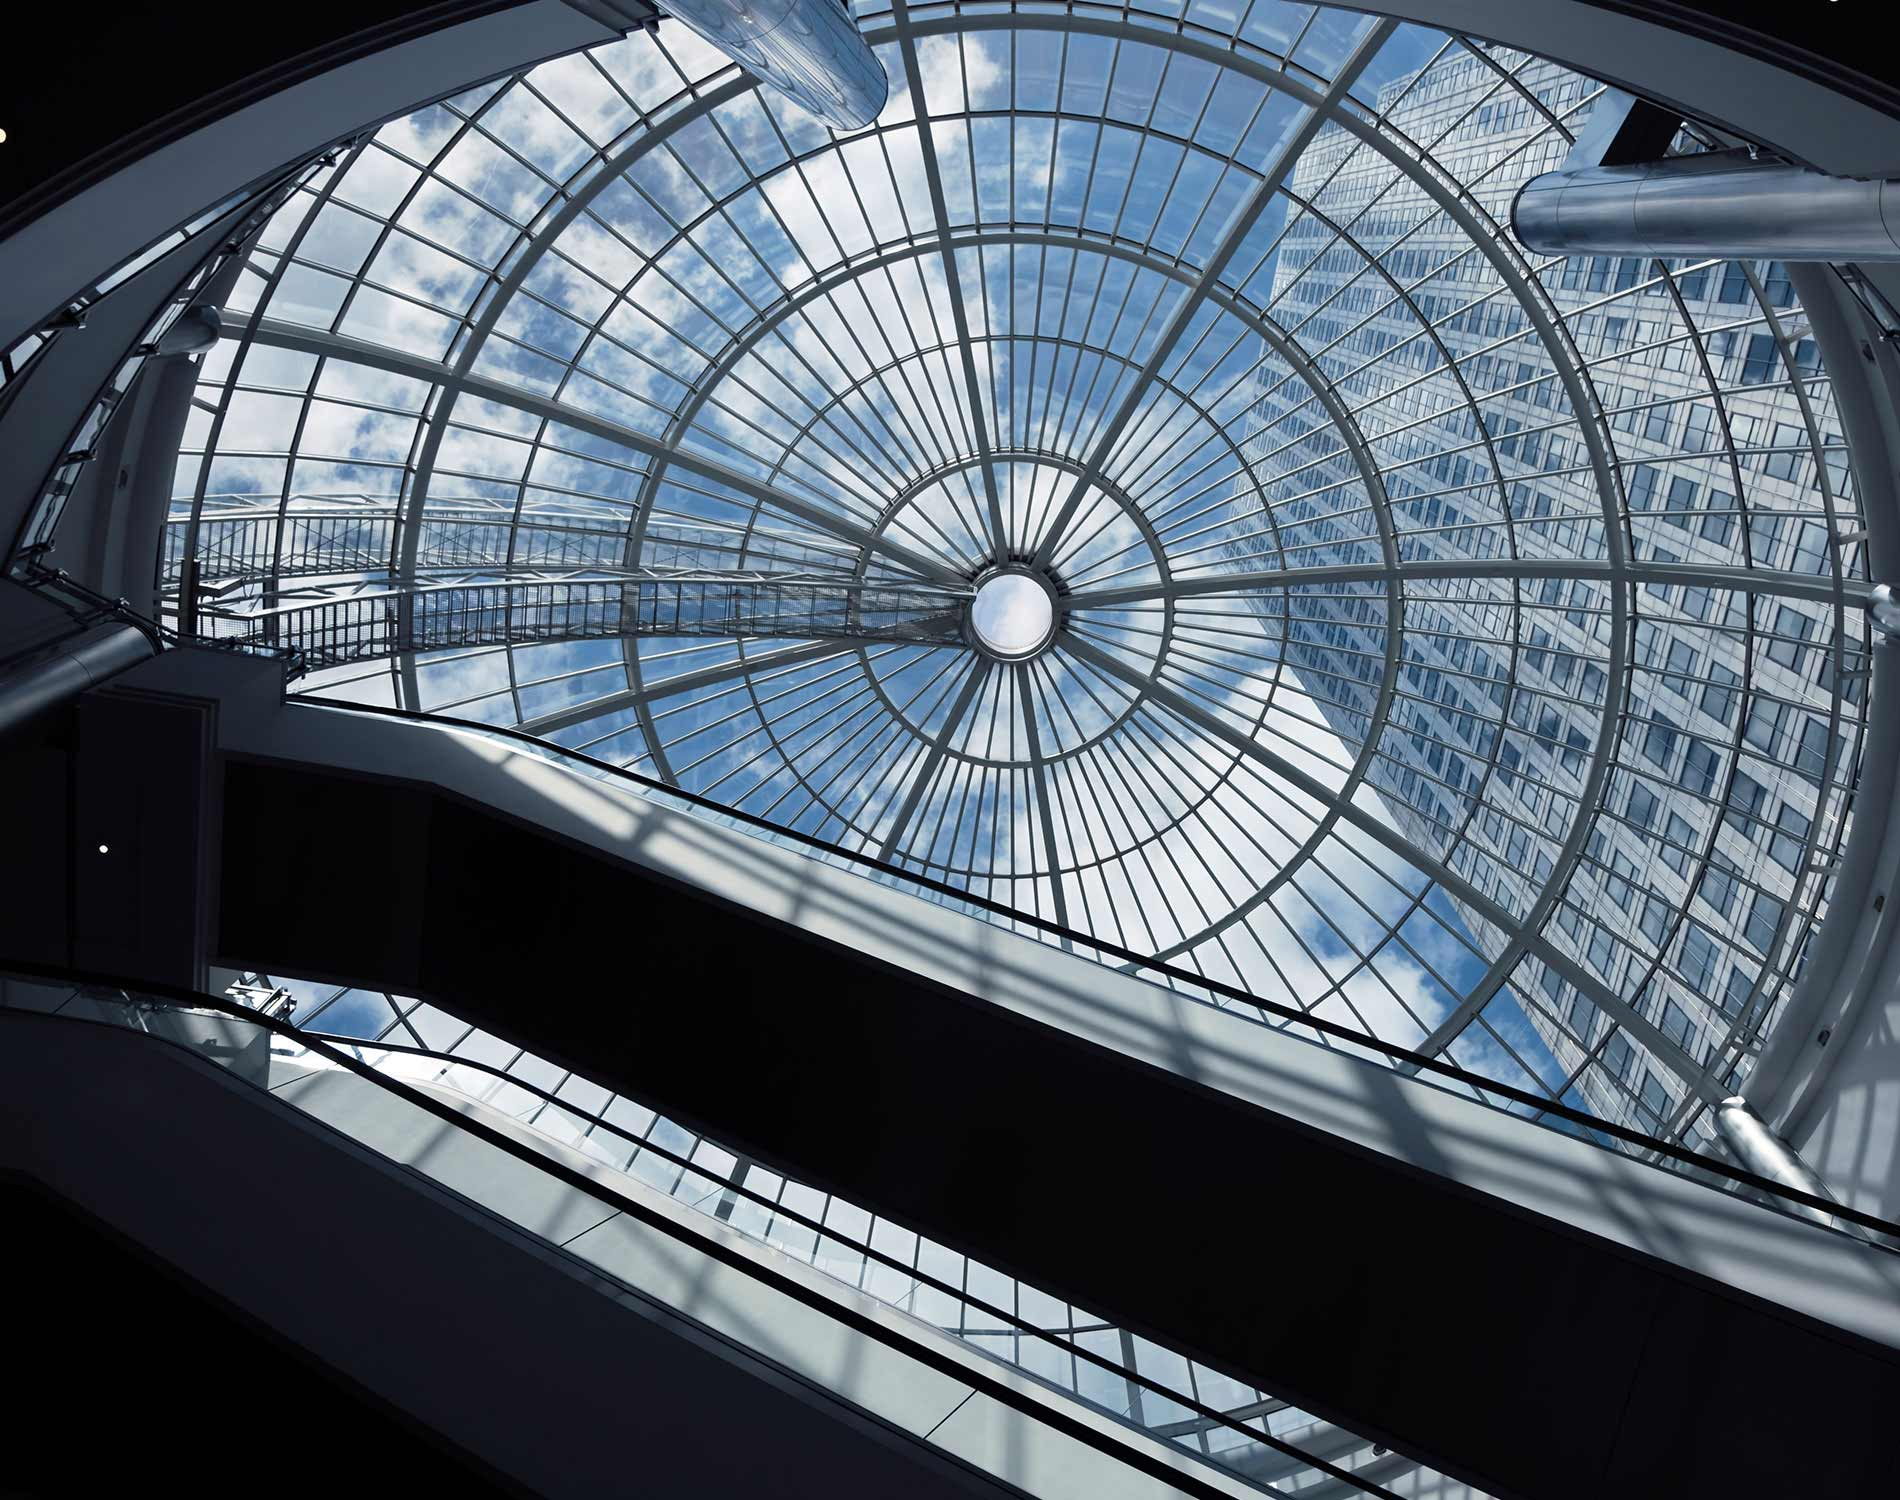 /-/media/images/website/background-images/practices/real-estate/height-of-glass-ceiling.ashx